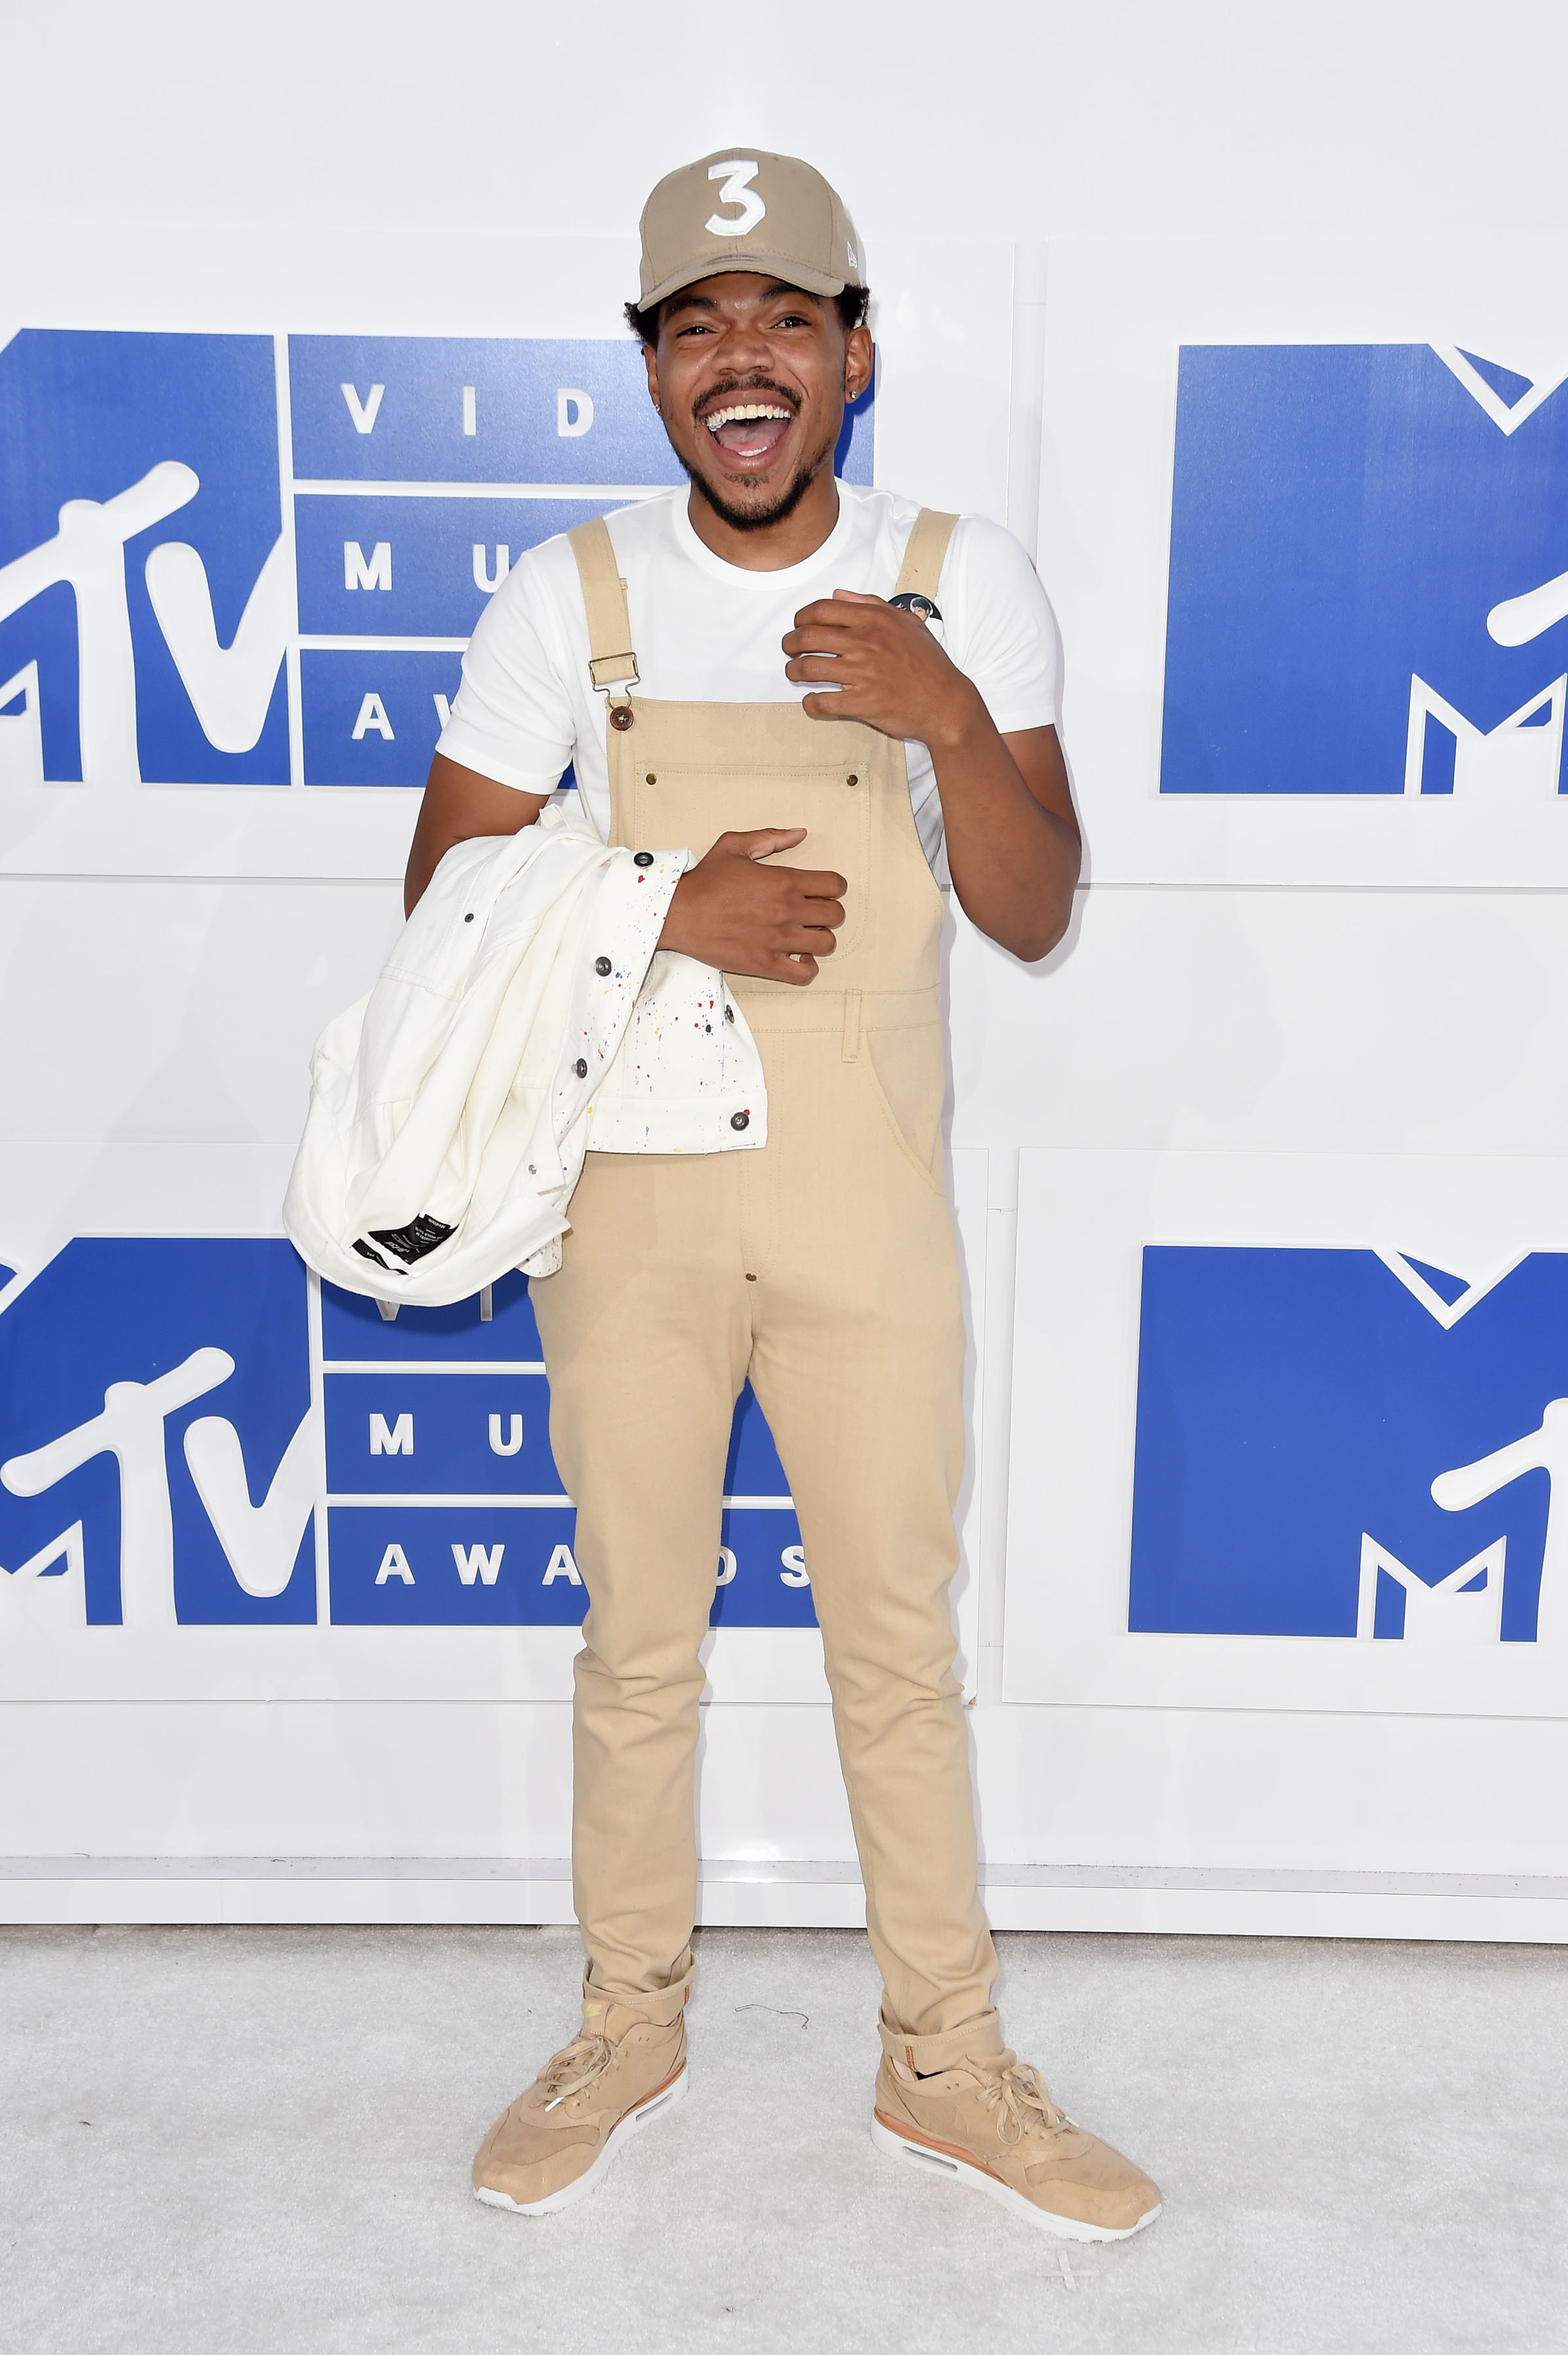 Chance the Rapper attends the 2016 MTV Video Music Awards at Madison Square Garden on Aug. 28, 2016 in New York City.